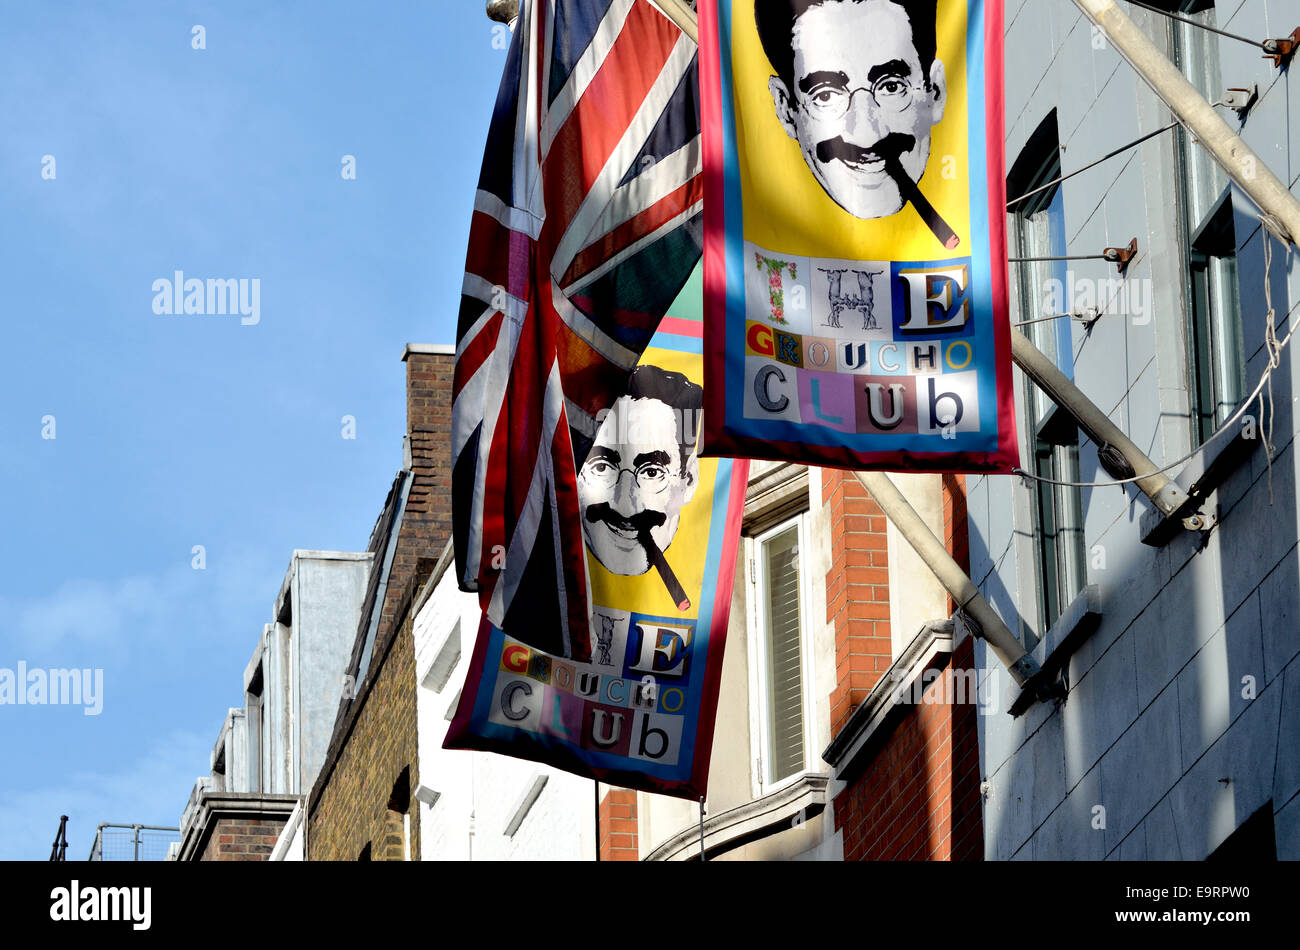 london-england-uk-the-groucho-club-in-de